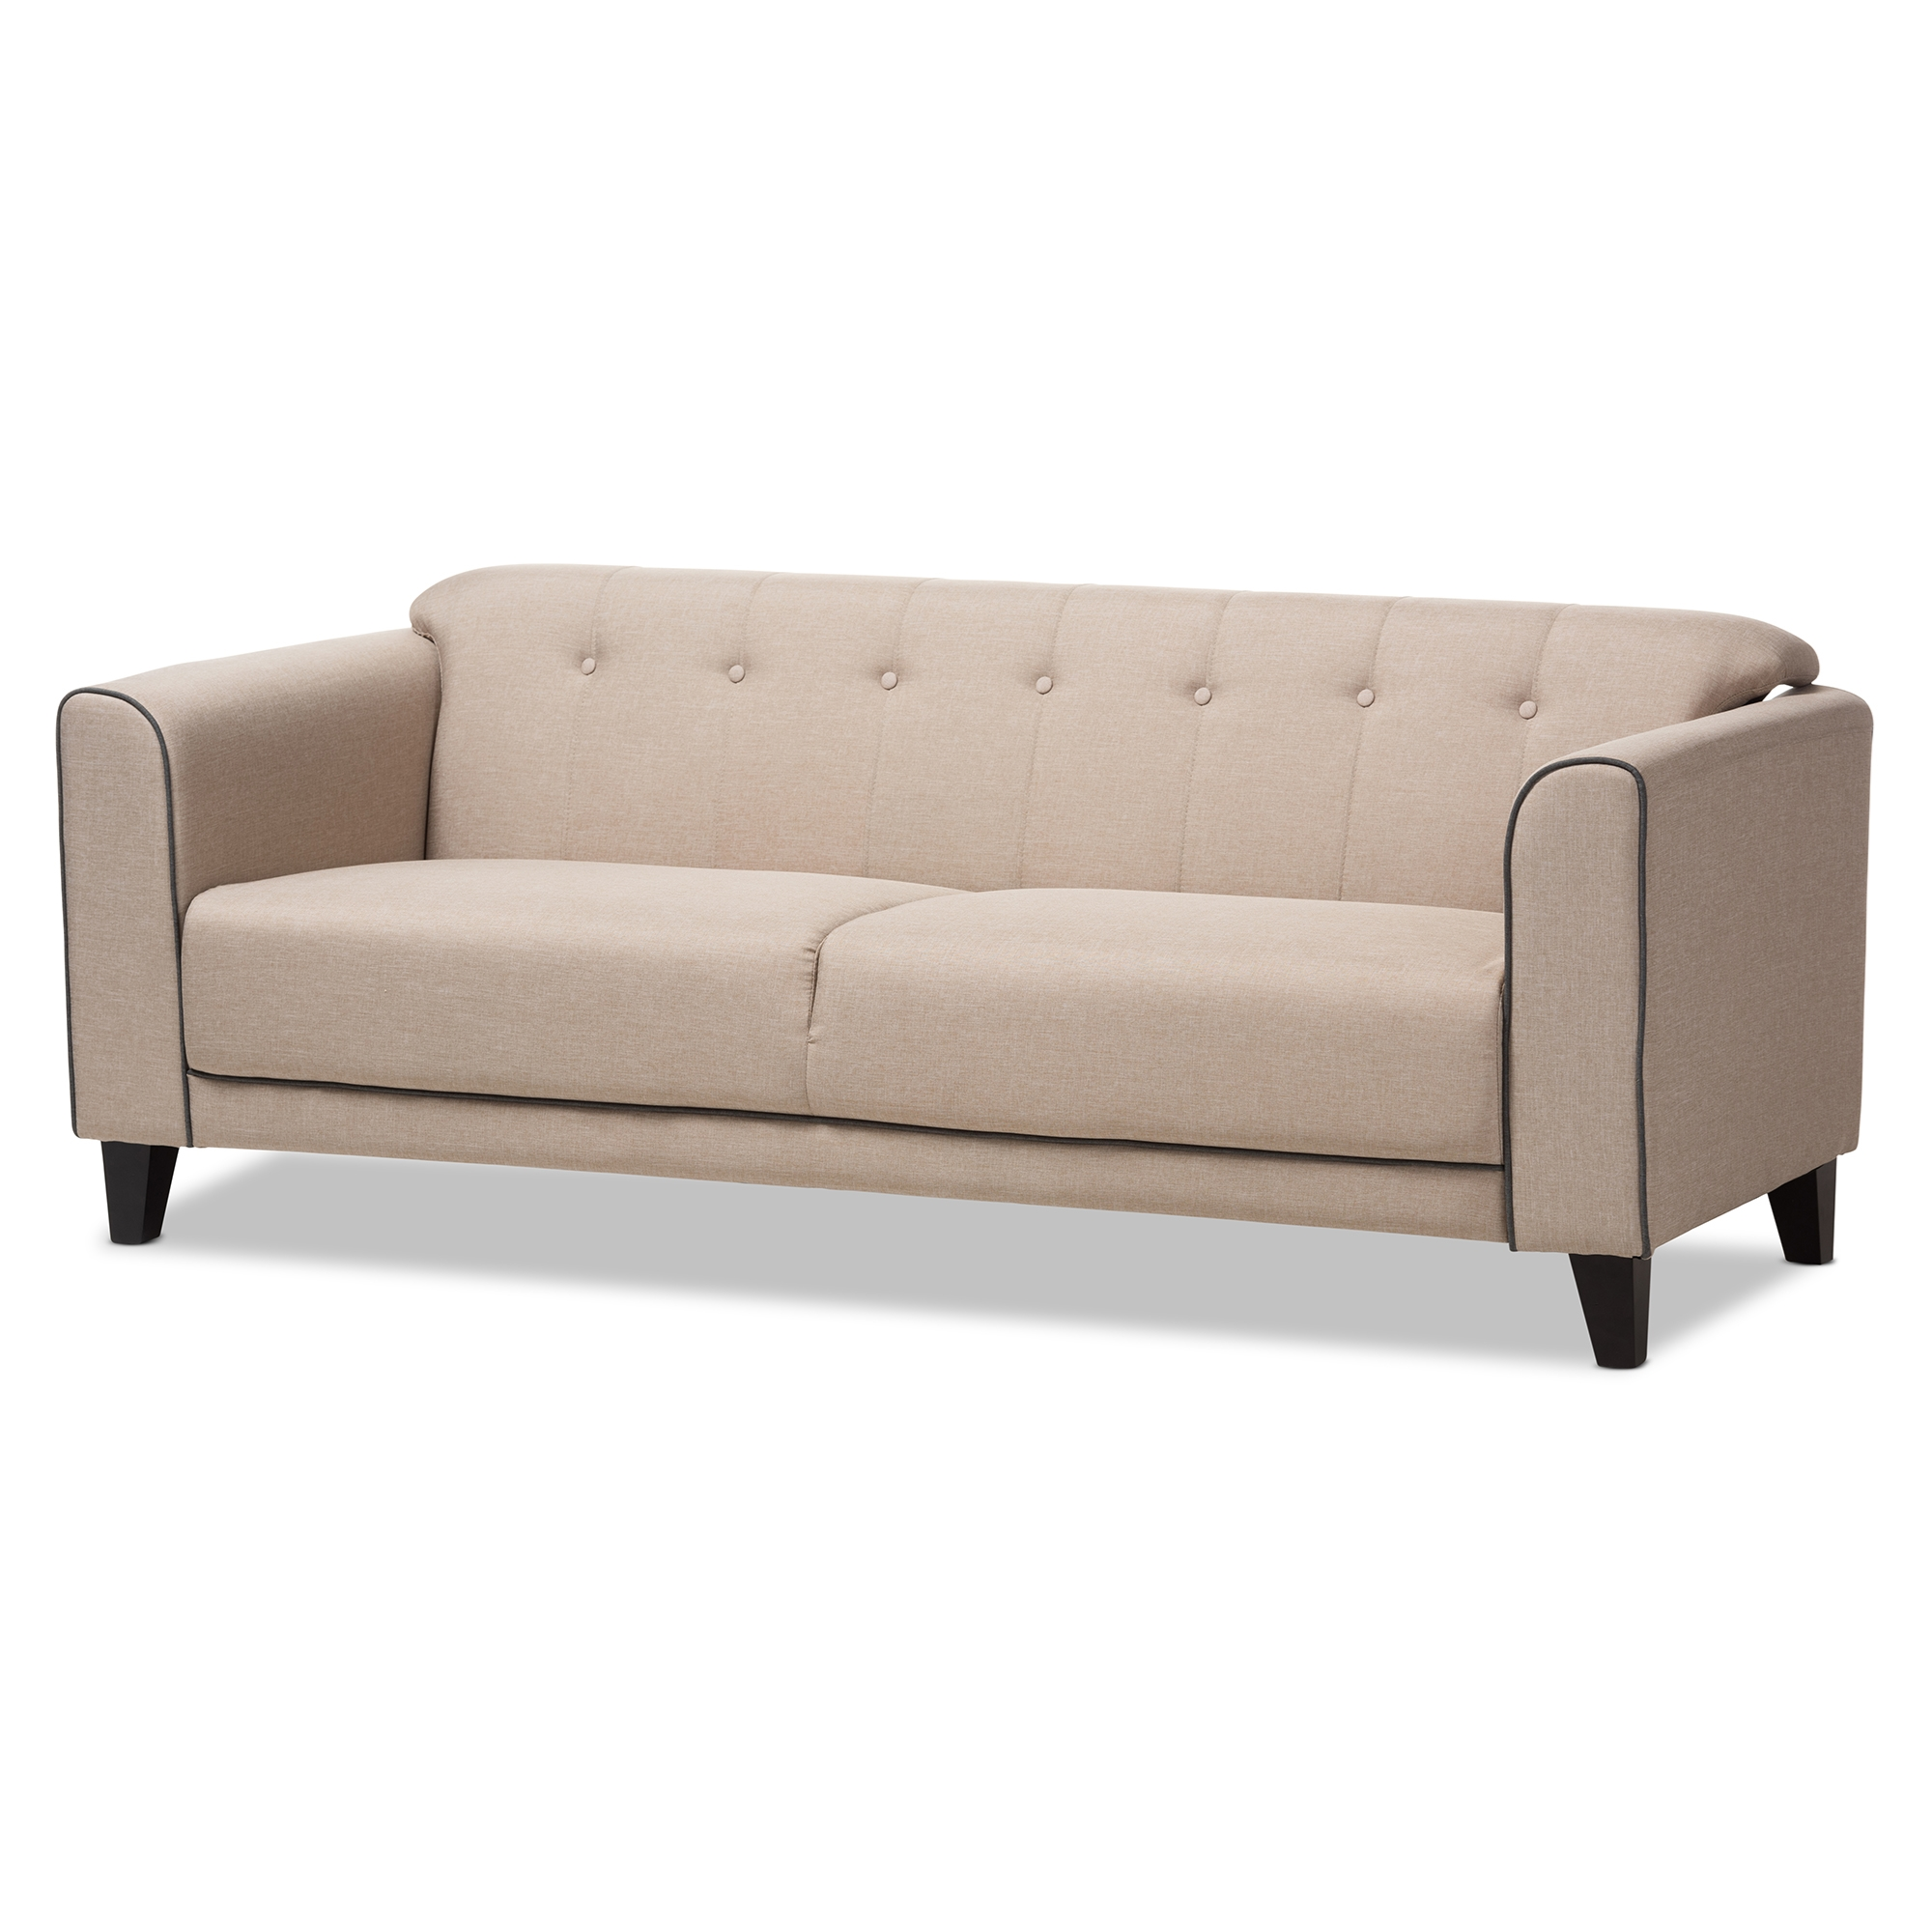 Baxton Studio Lottie Modern And Contemporary Beige Fabric Button Tufted  3 Seater Sofa Affordable